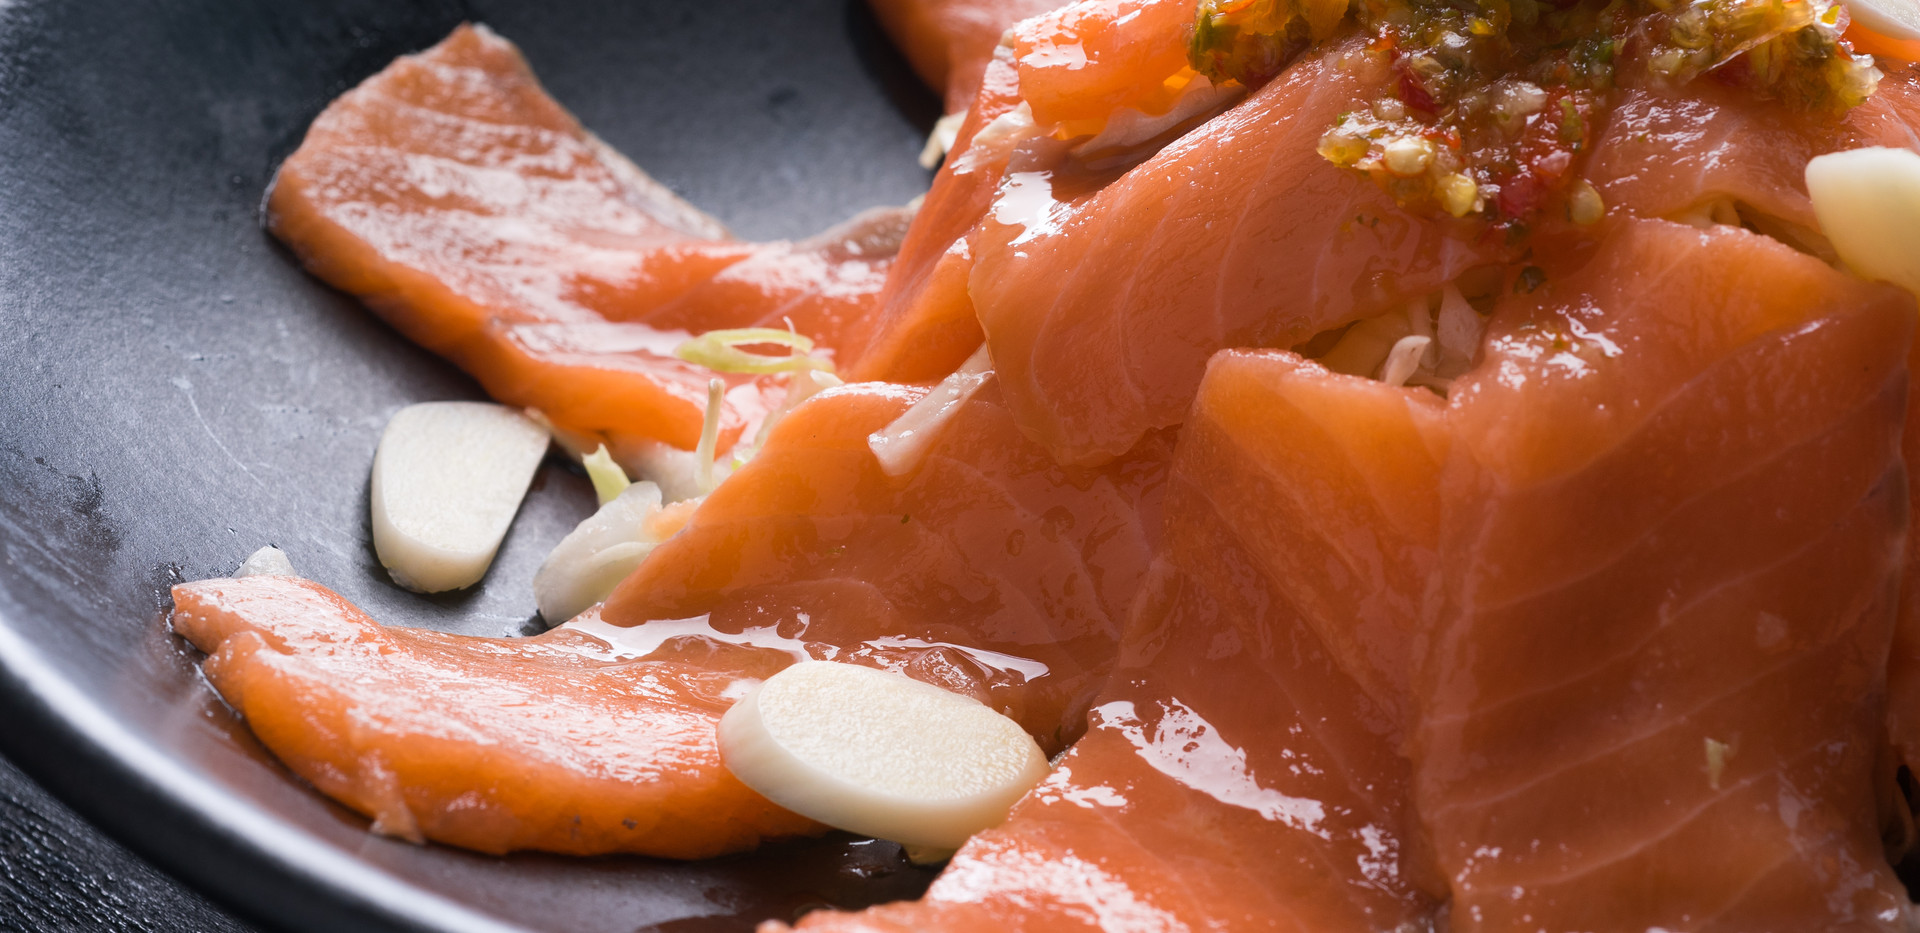 Salmon salad with spicy dressing